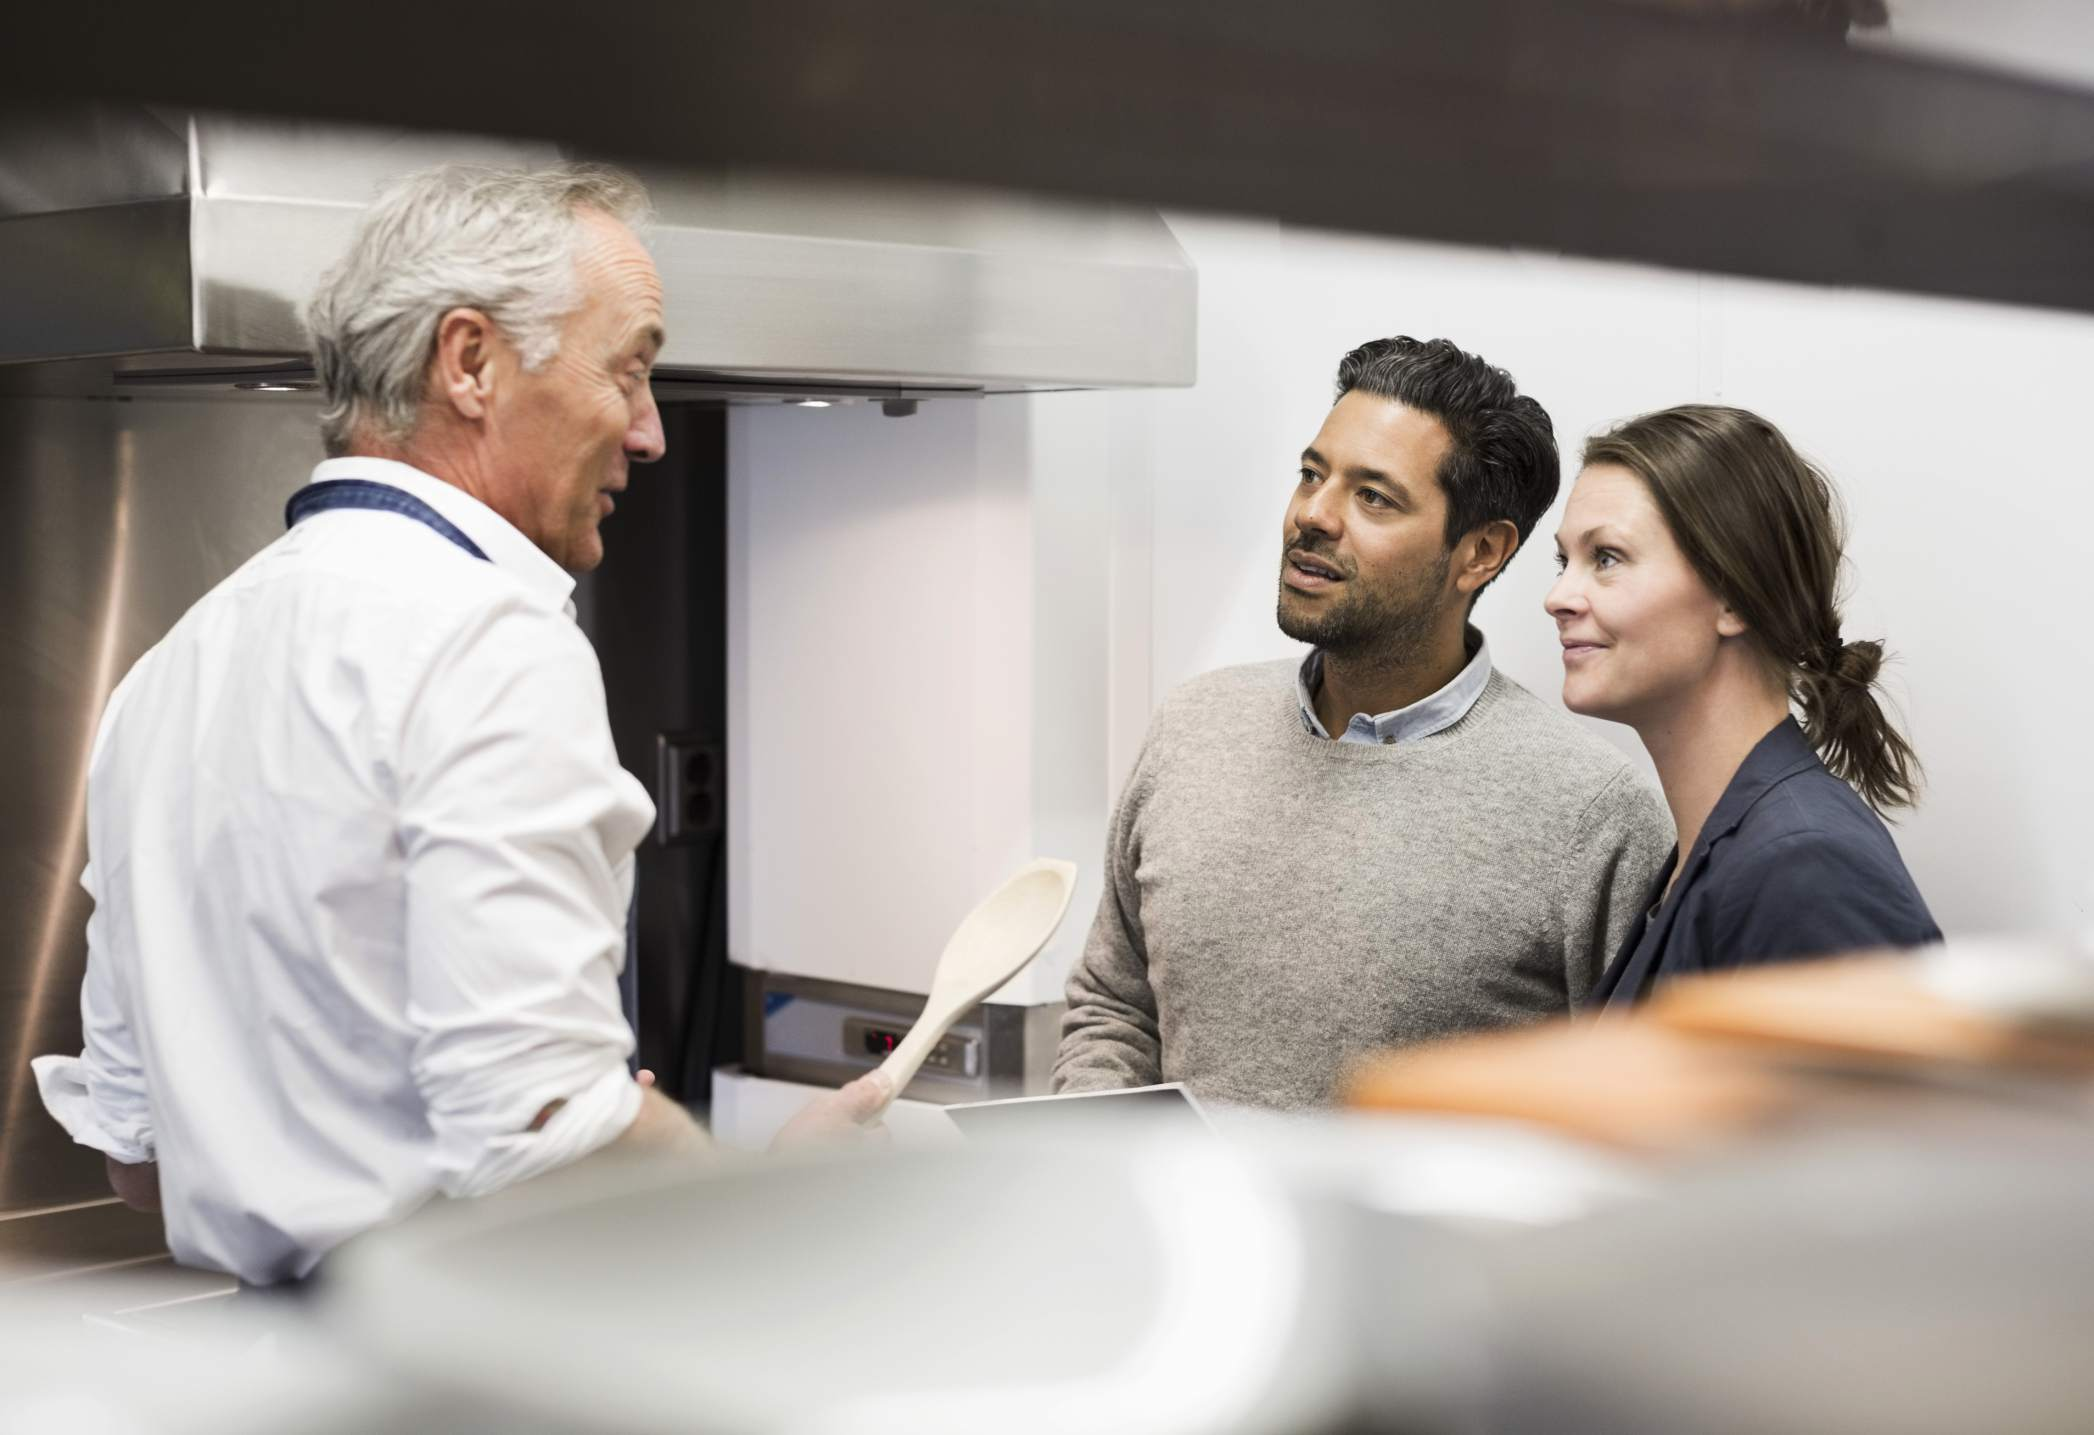 Chef talking to business people in commercial kitchen